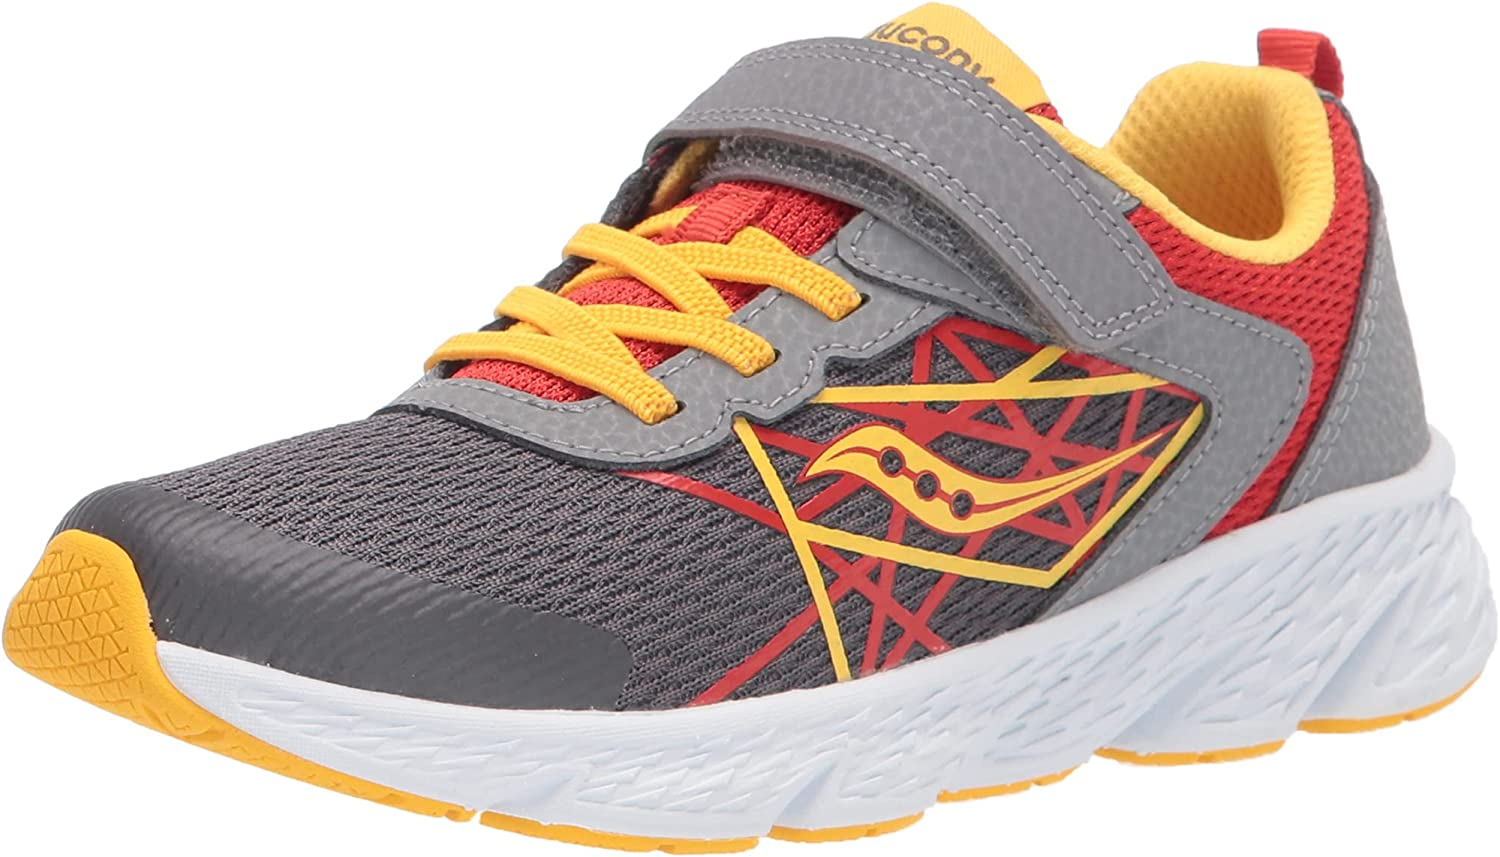 Online limited product Saucony Wind Alternative Closure Running Shoe RED 40% OFF Cheap Sale Grey Yellow